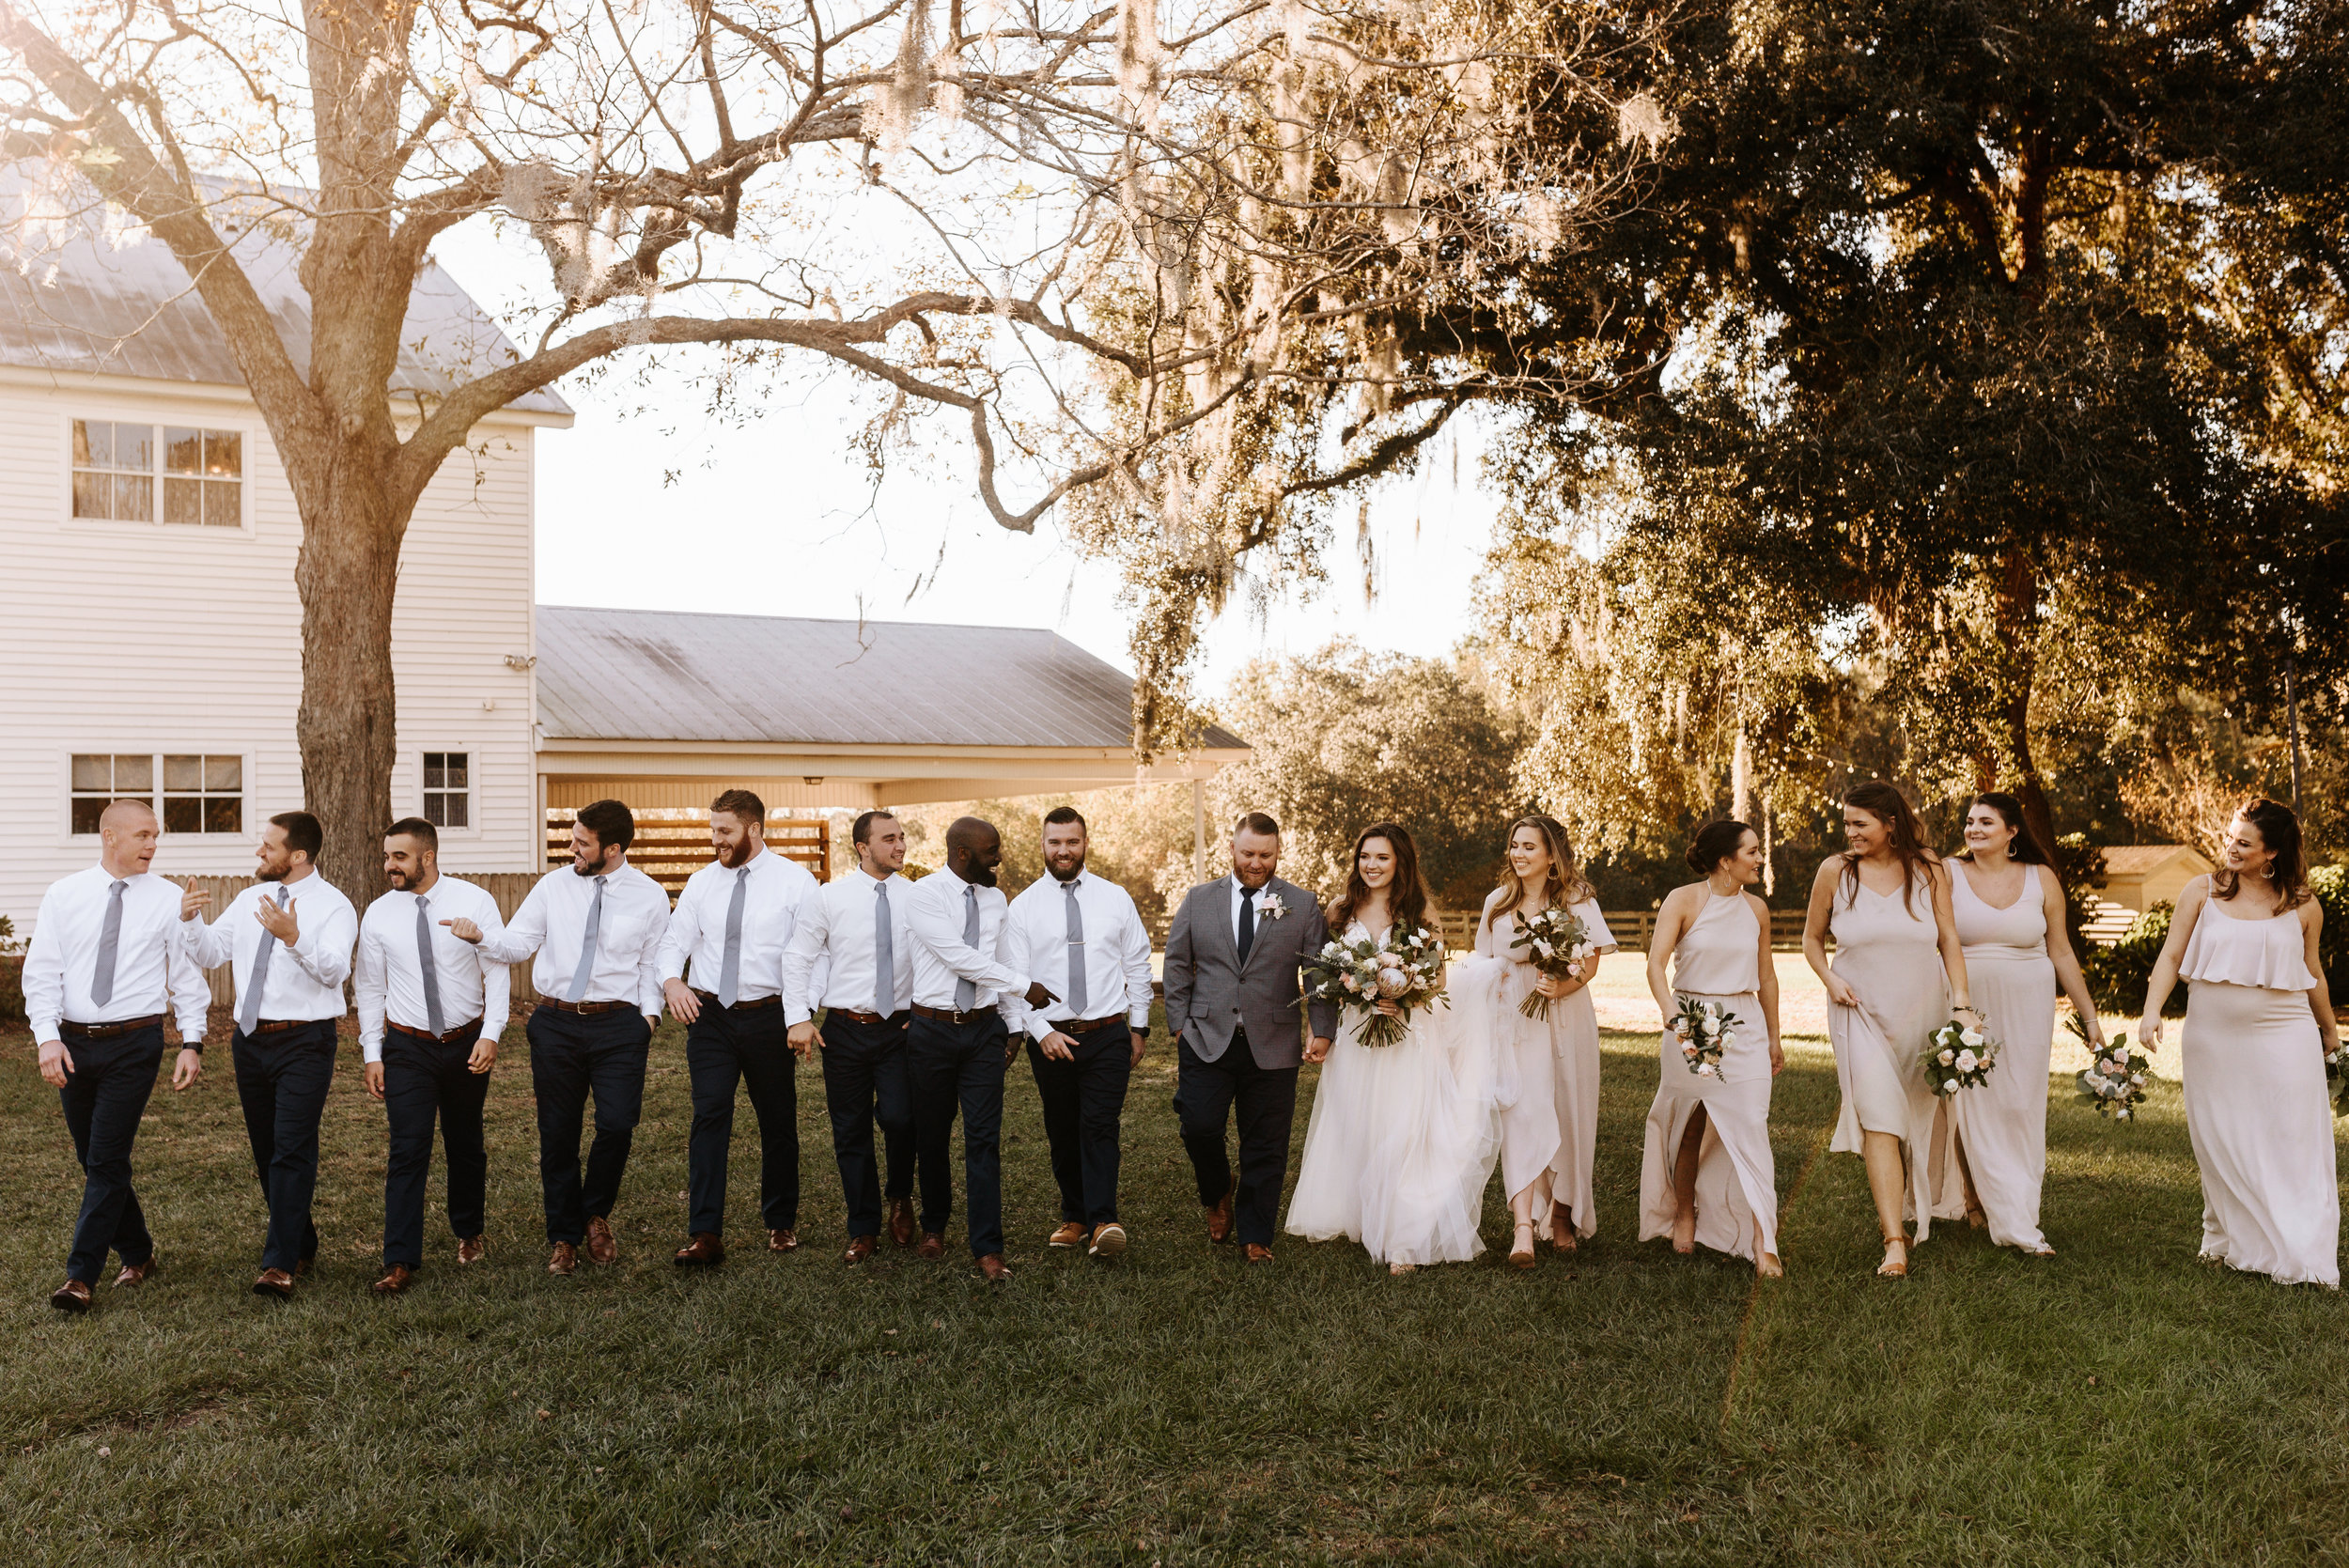 Morgan-Brandon-Wedding-All-4-One-Farms-Jacksonville-Florida-Photographer-Photography-by-V-6373.jpg